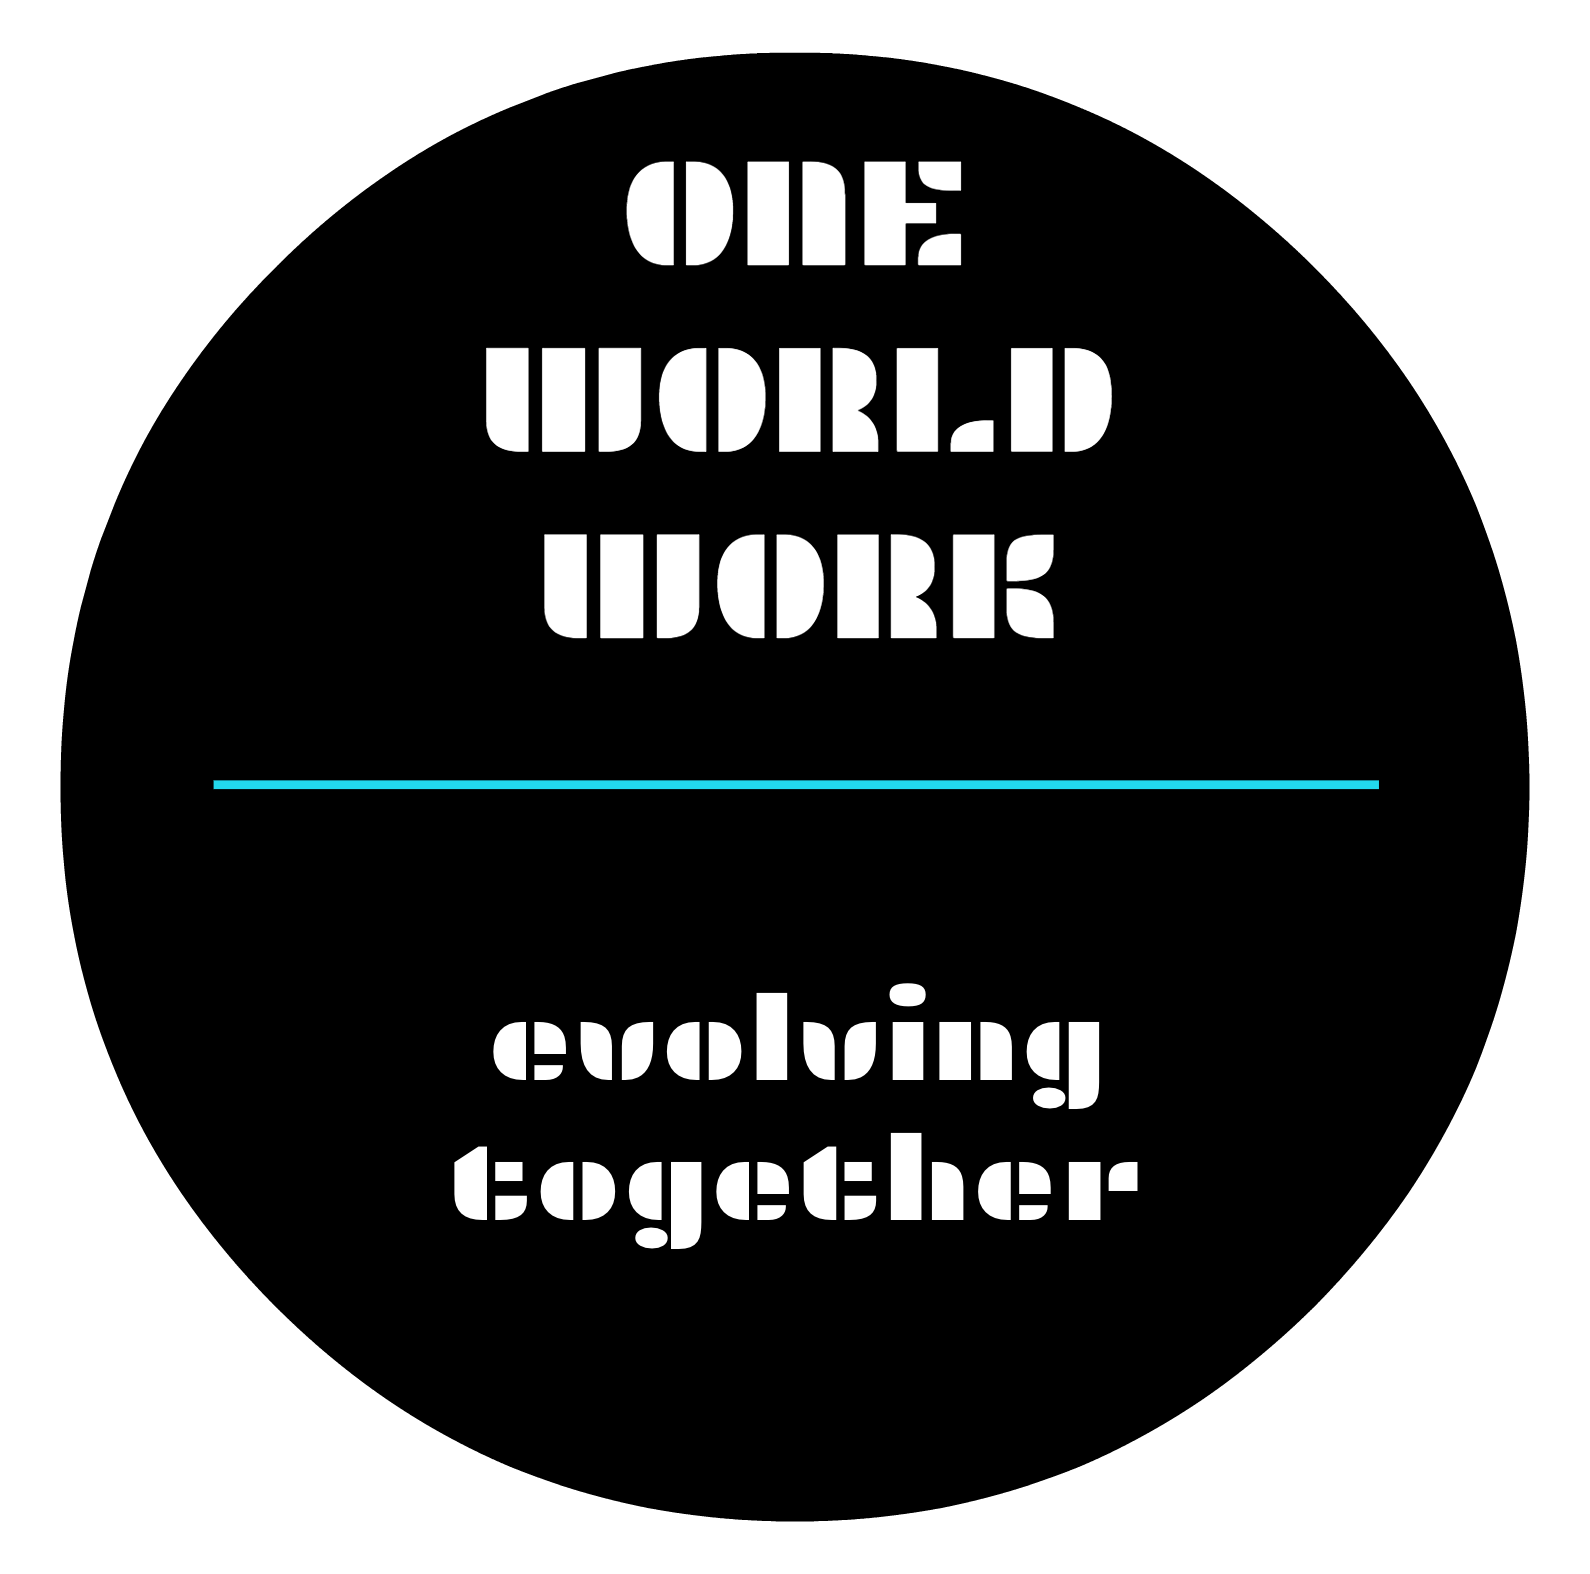 One World Work